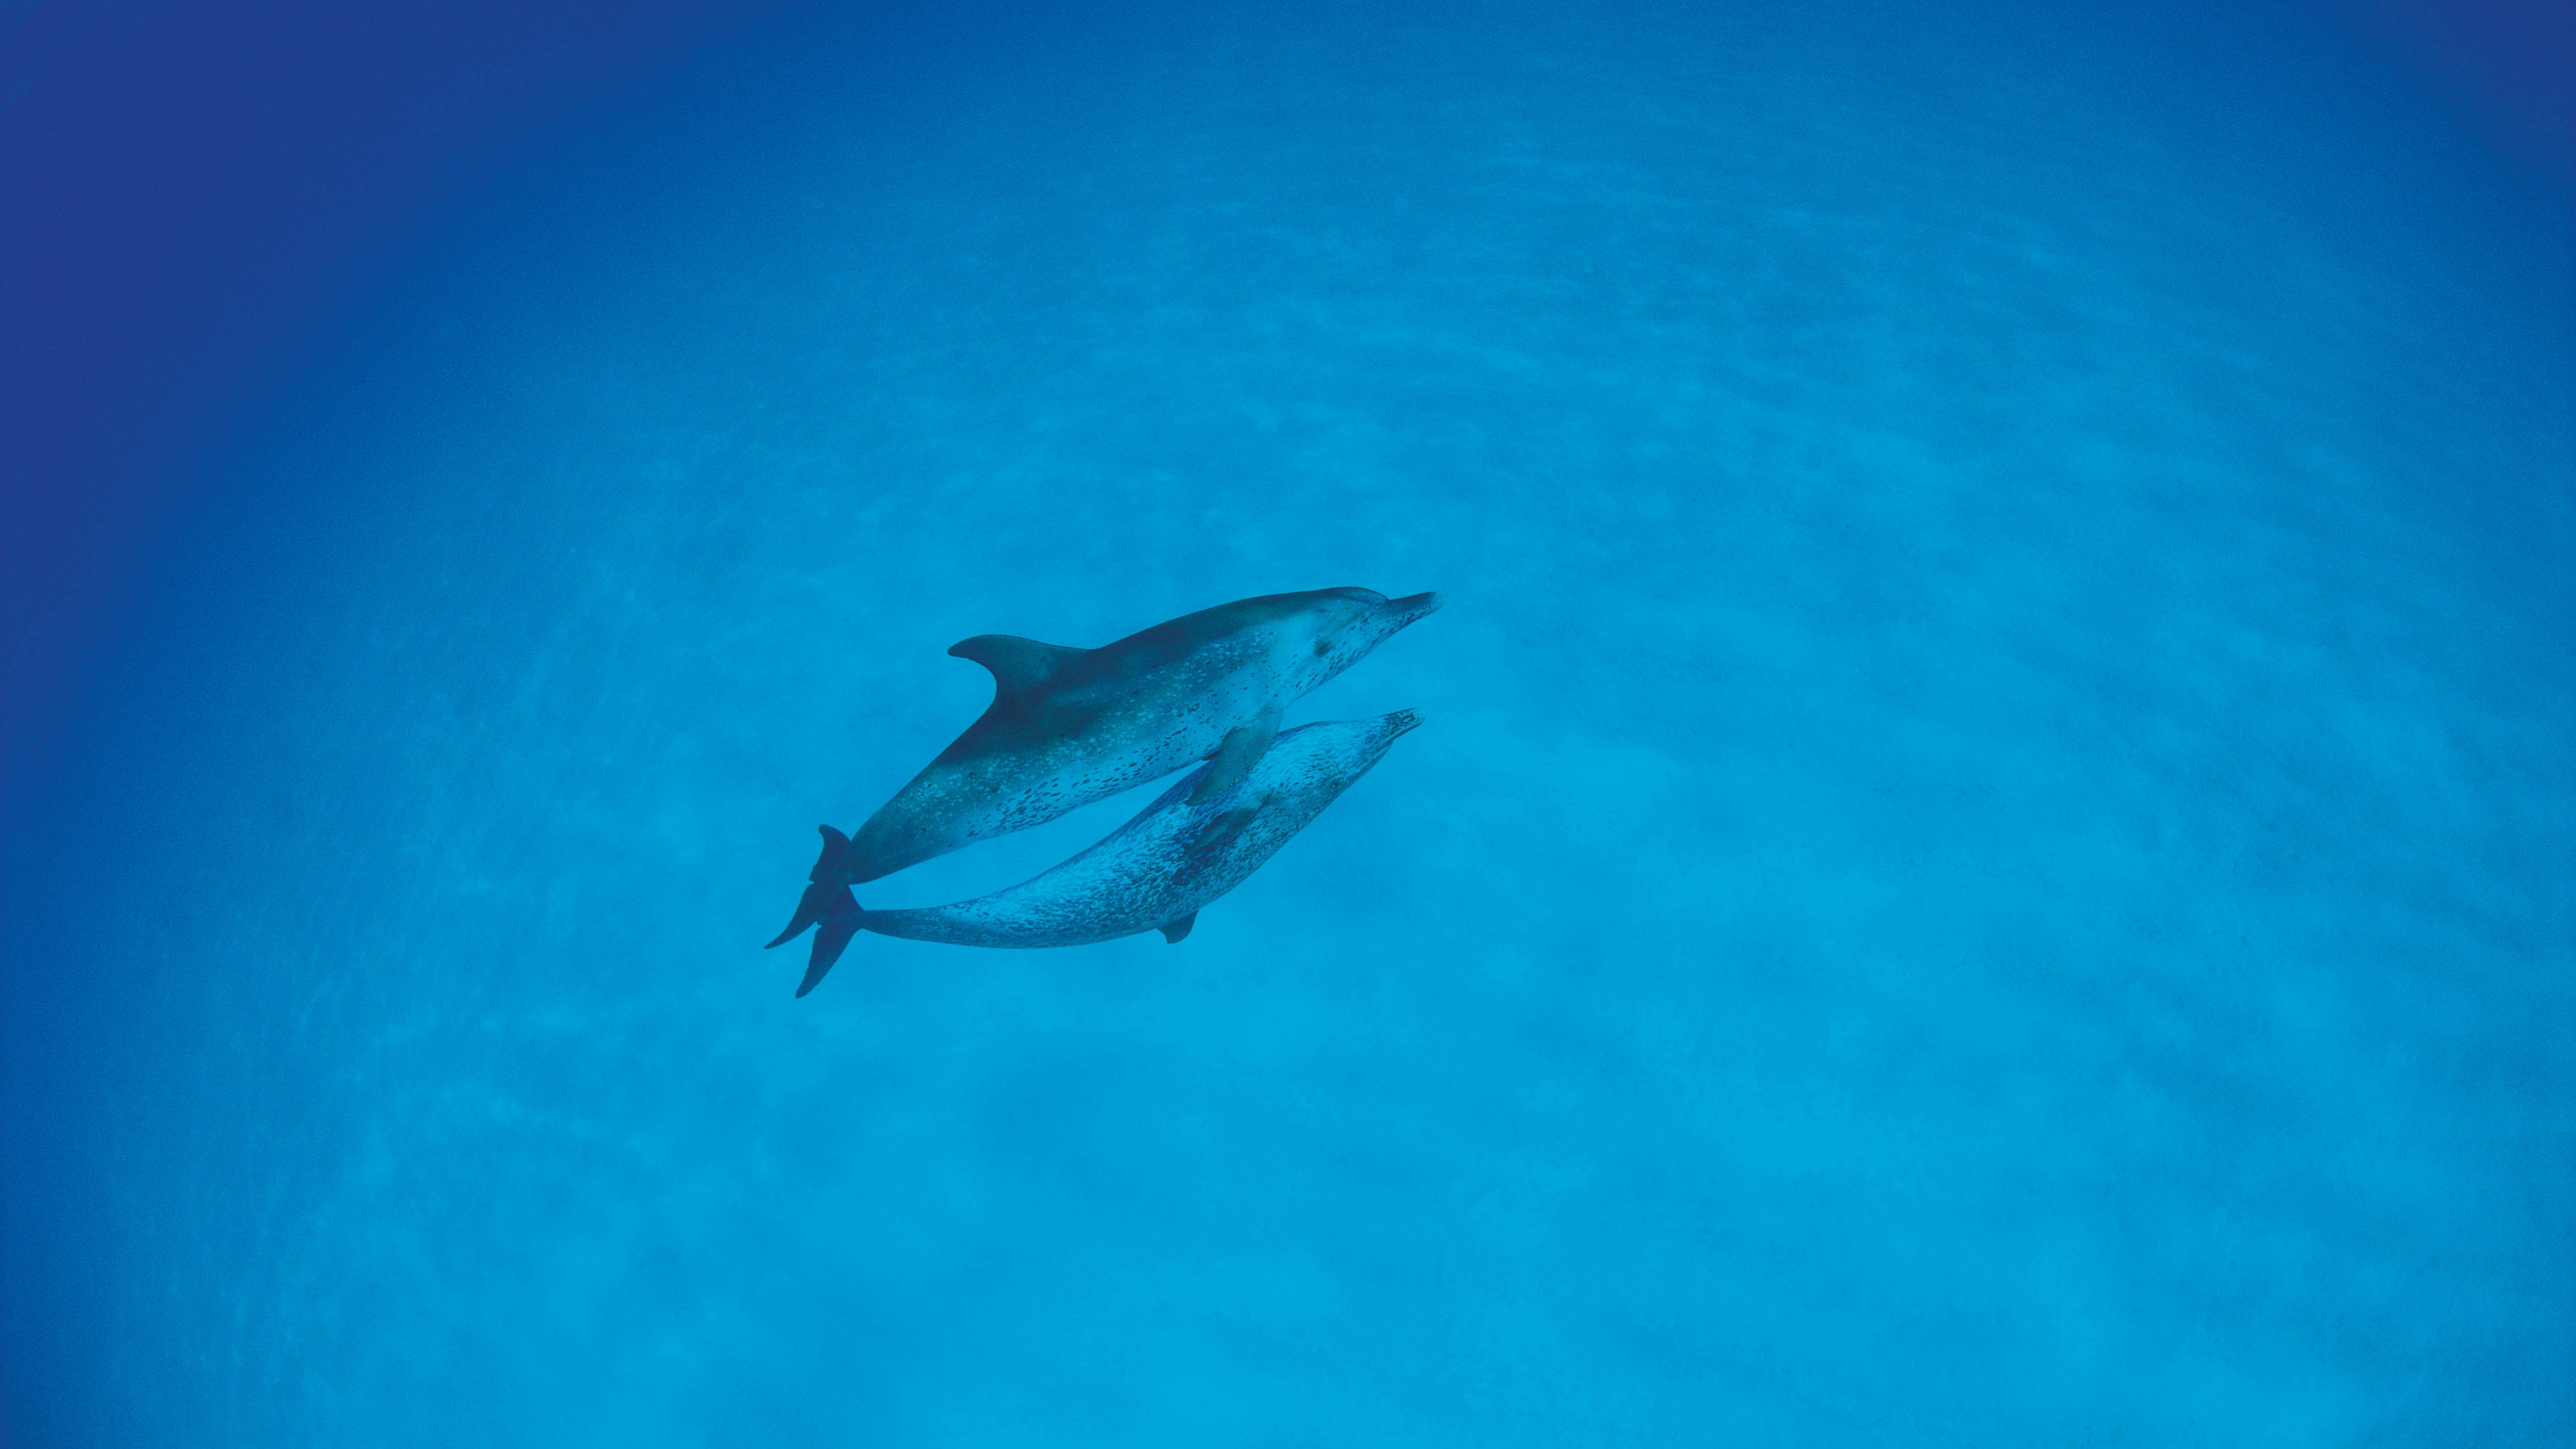 dolphins love ocean 4k 1542242113 - dolphins, love, ocean 4k - Ocean, Love, Dolphins